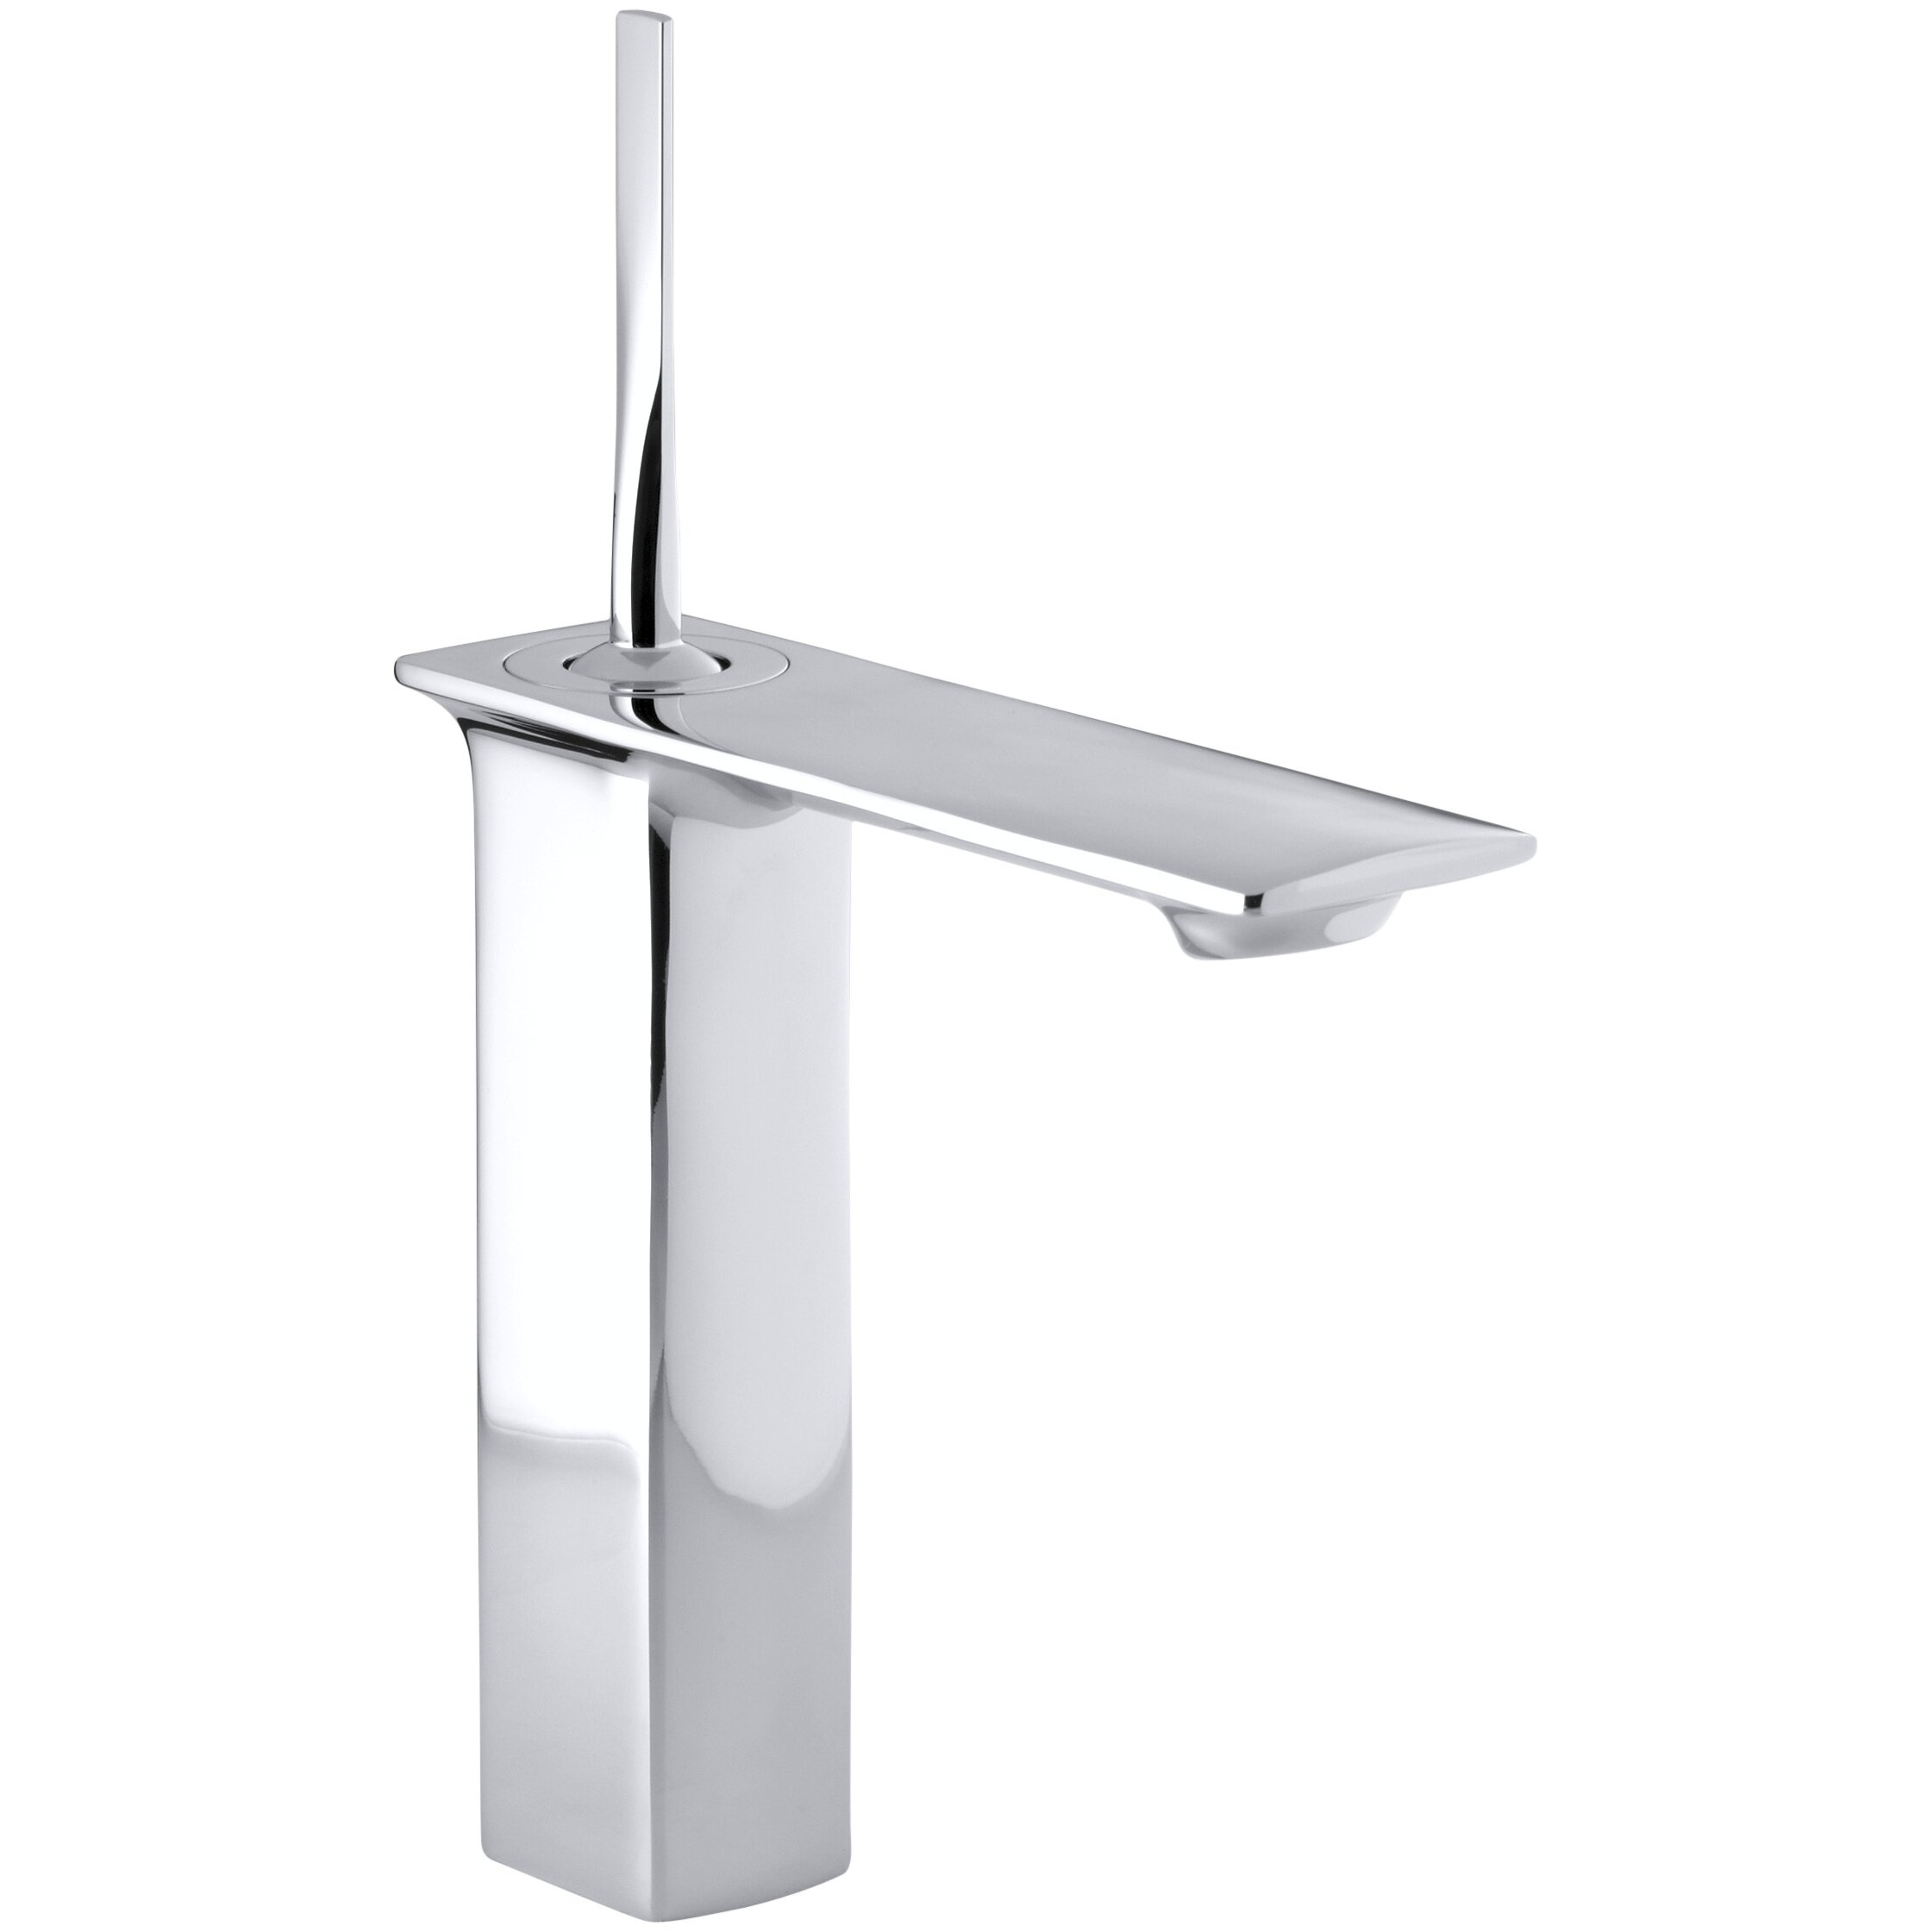 Kohler Stance Tall Single Hole Bathroom Sink Faucet Reviews